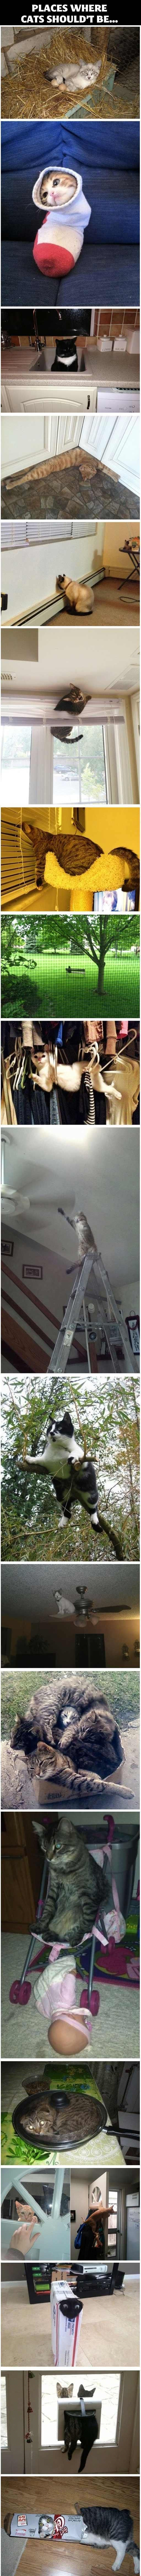 Places Where Cats Shouldn't Be HILARIOUS